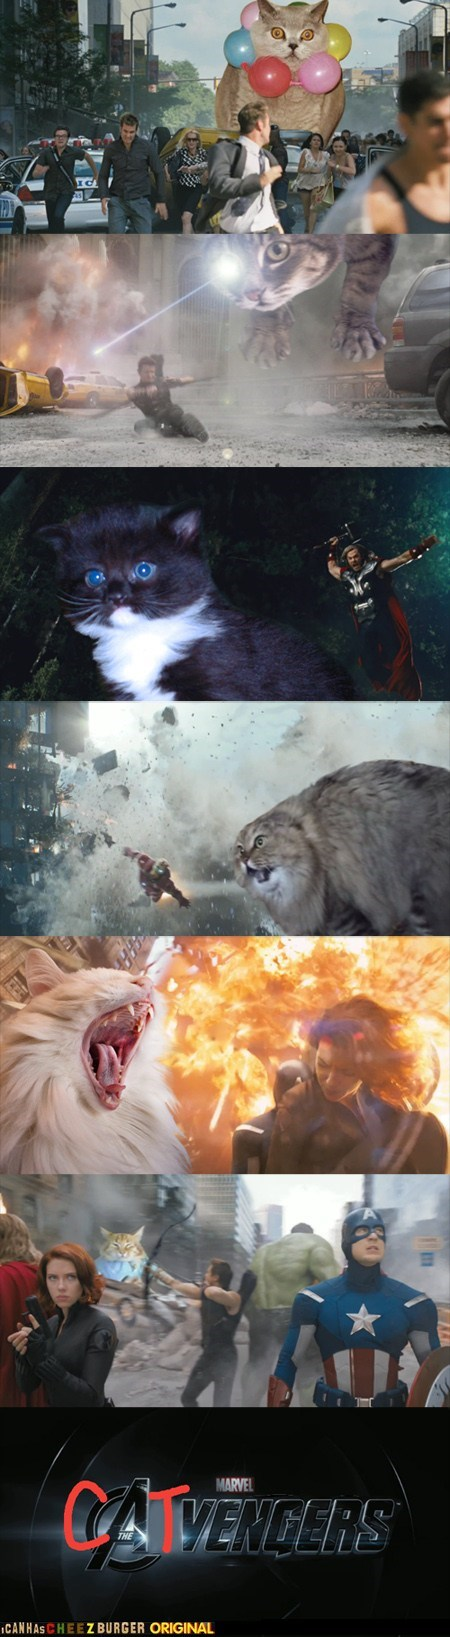 avengers,best of the week,Cats,movies,multipanel,photoshopped,superheroes,The Avengers